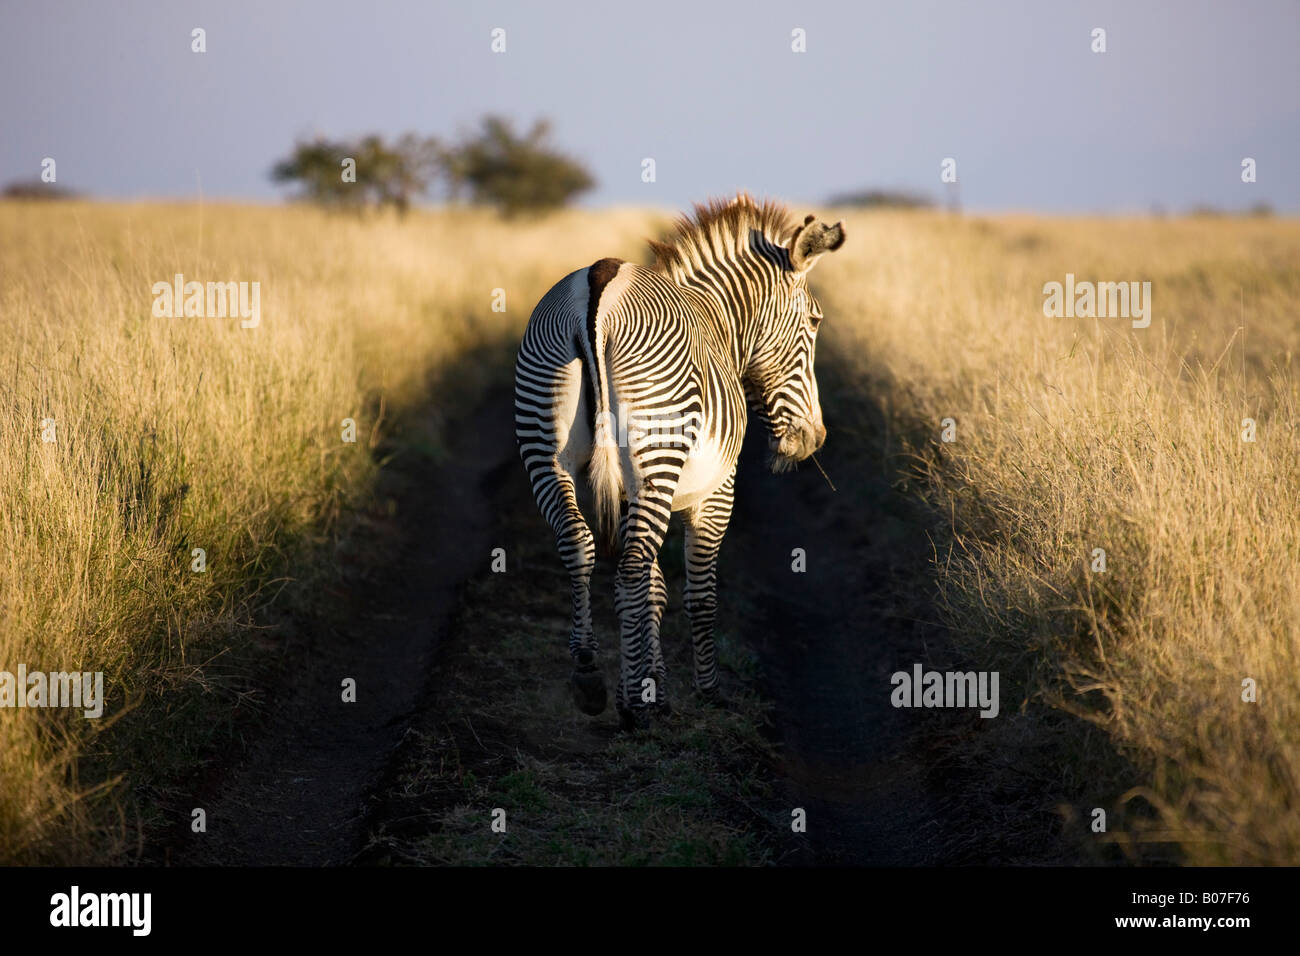 Le zèbre de Grevy, Lewa Wildlife Conservancy, Kenya Photo Stock